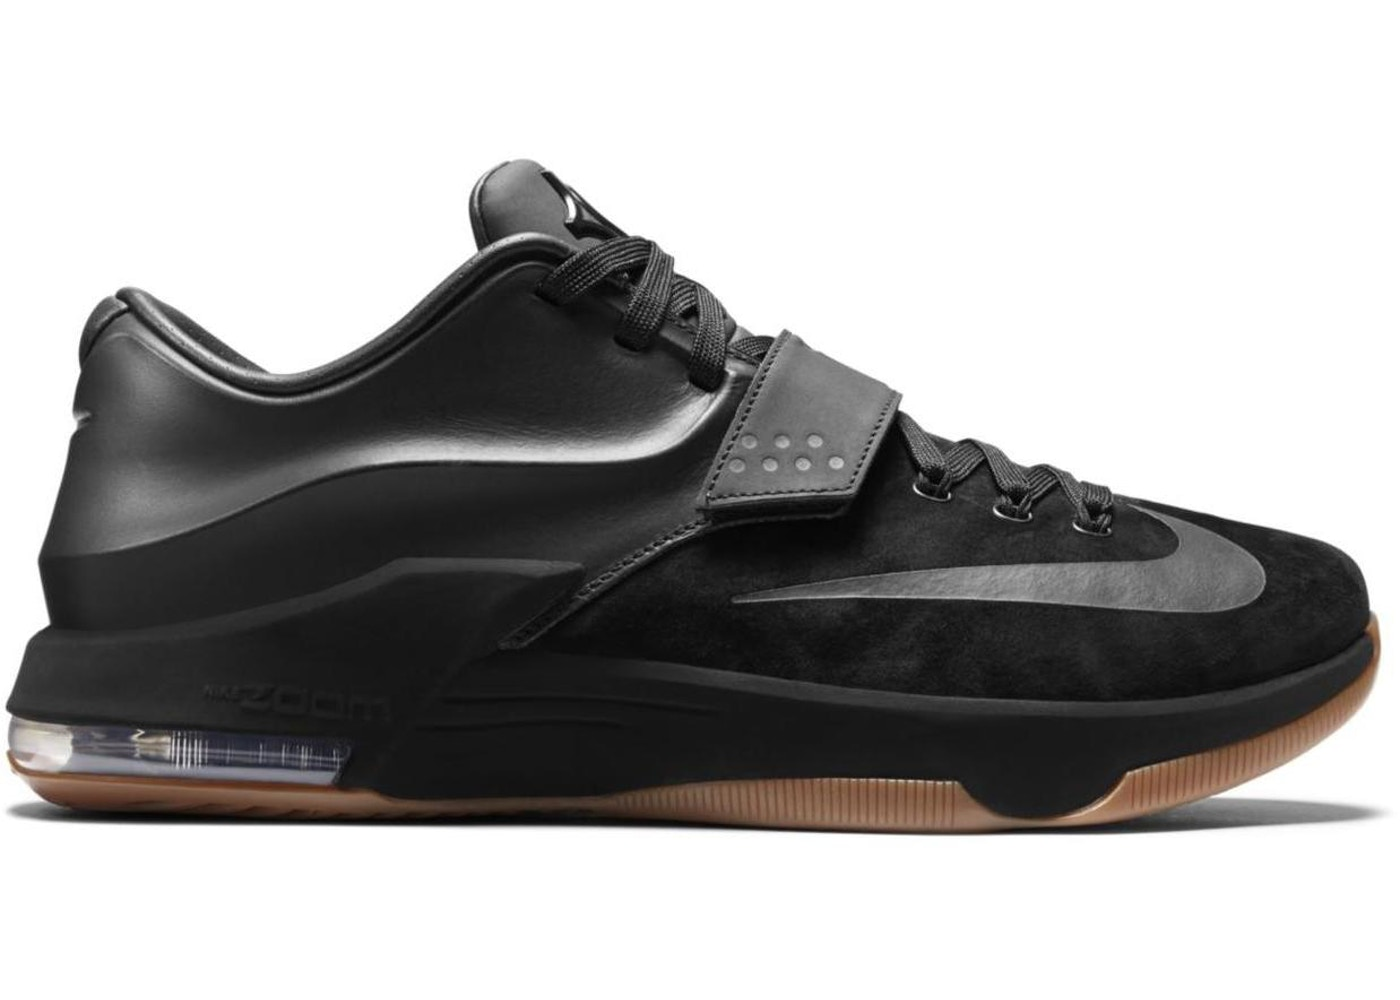 new products a3f8d e46a1 Nike KD 7 Shoes - Average Sale Price